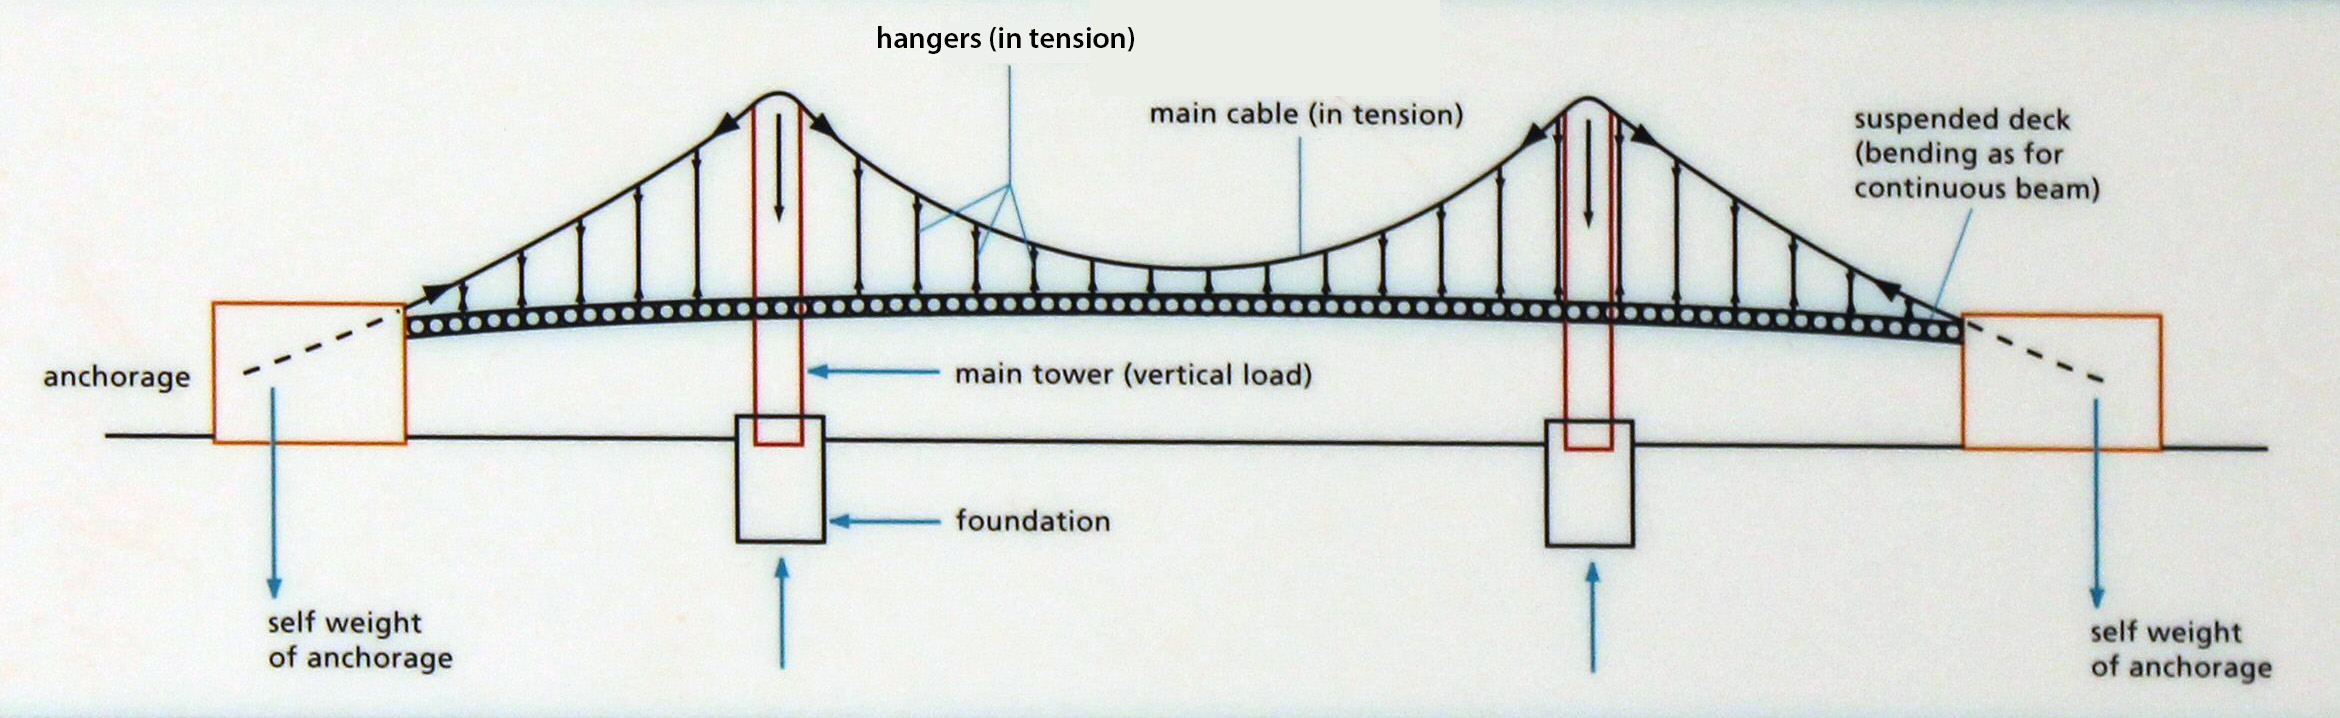 Diagram showing the main loads in a suspension bridge